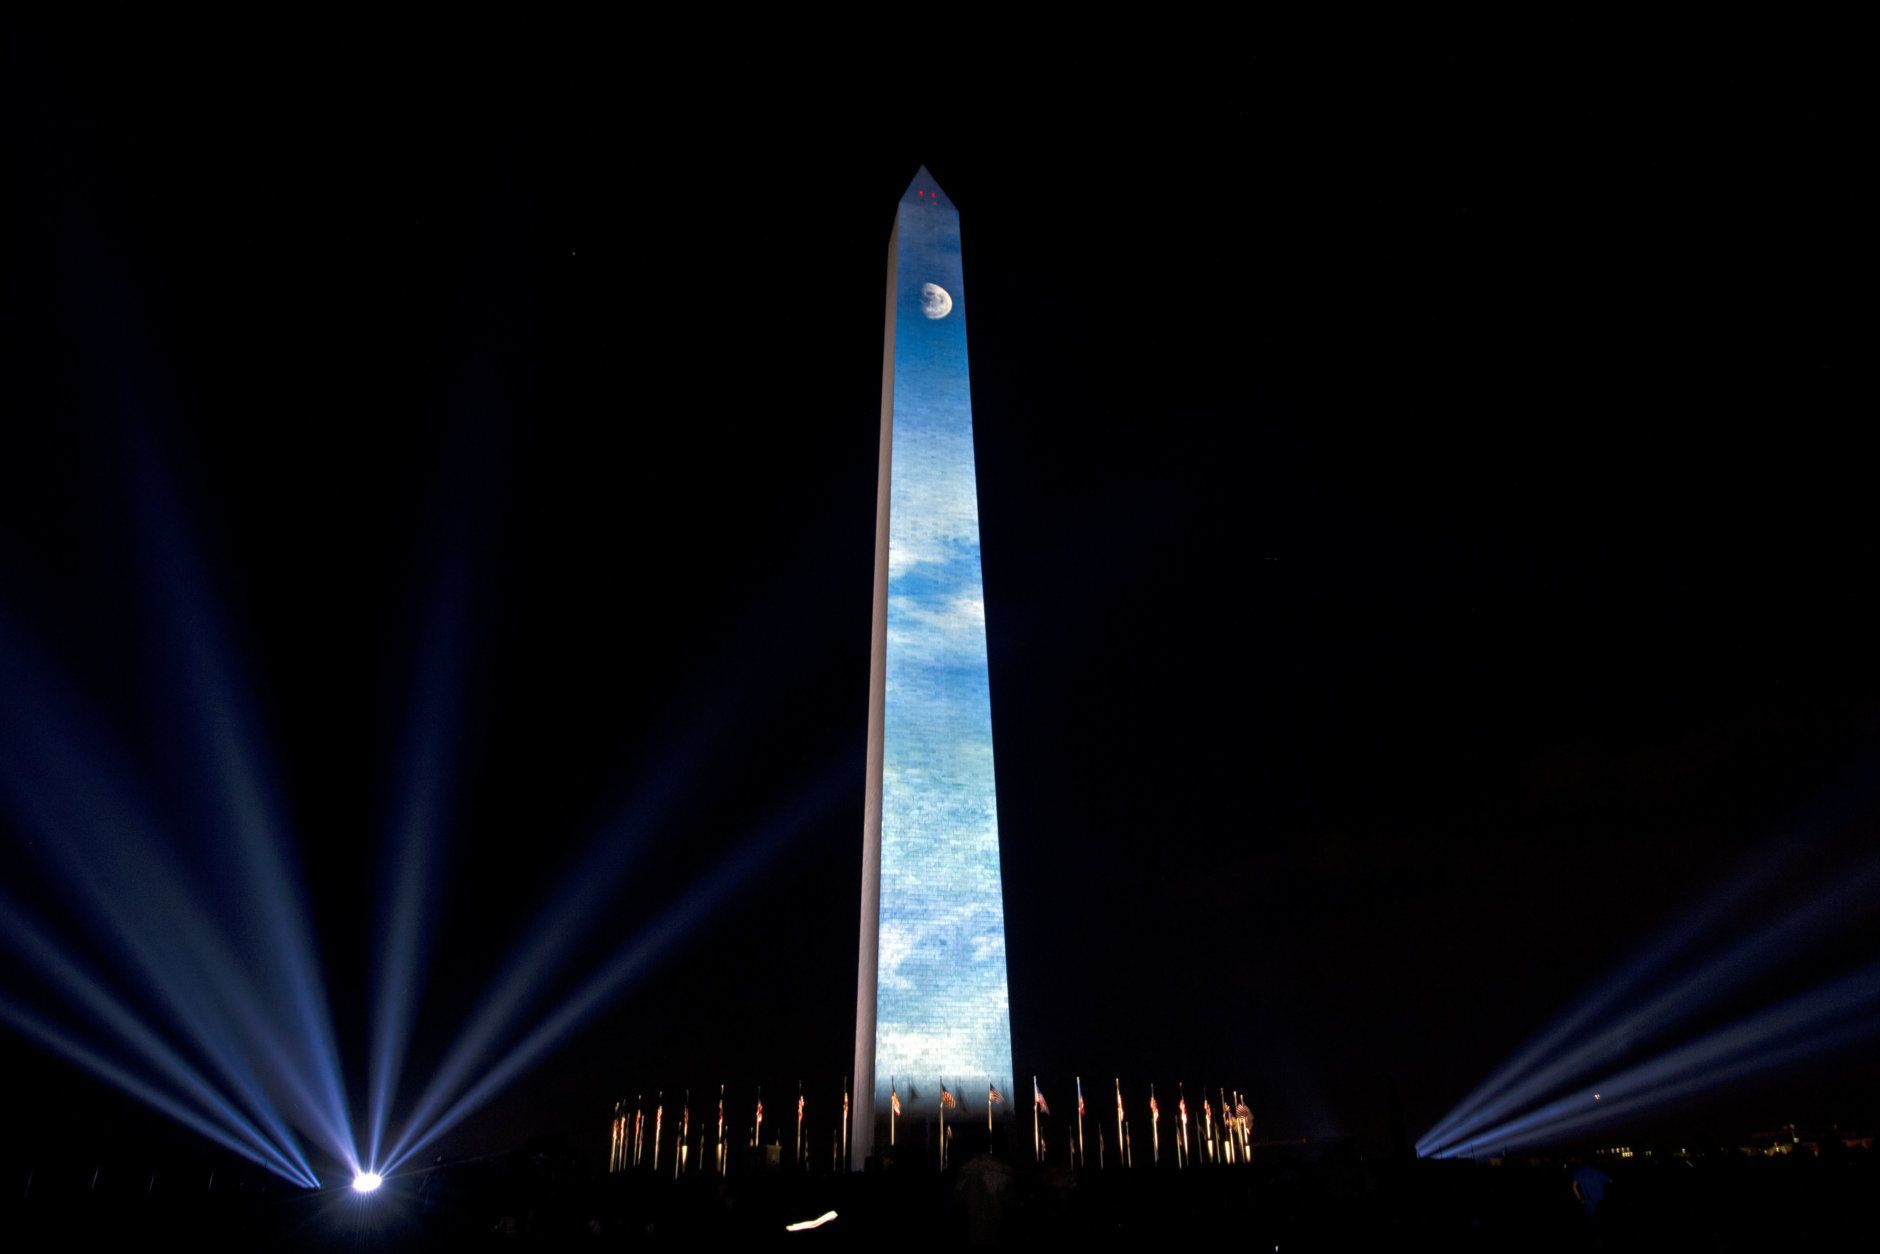 The Moon is projected on the Washington Monument, during the 50th anniversary of the Apollo moon landing festivities at the National Mall in Washington, Friday, July 19, 2019. (AP Photo/Jose Luis Magana)